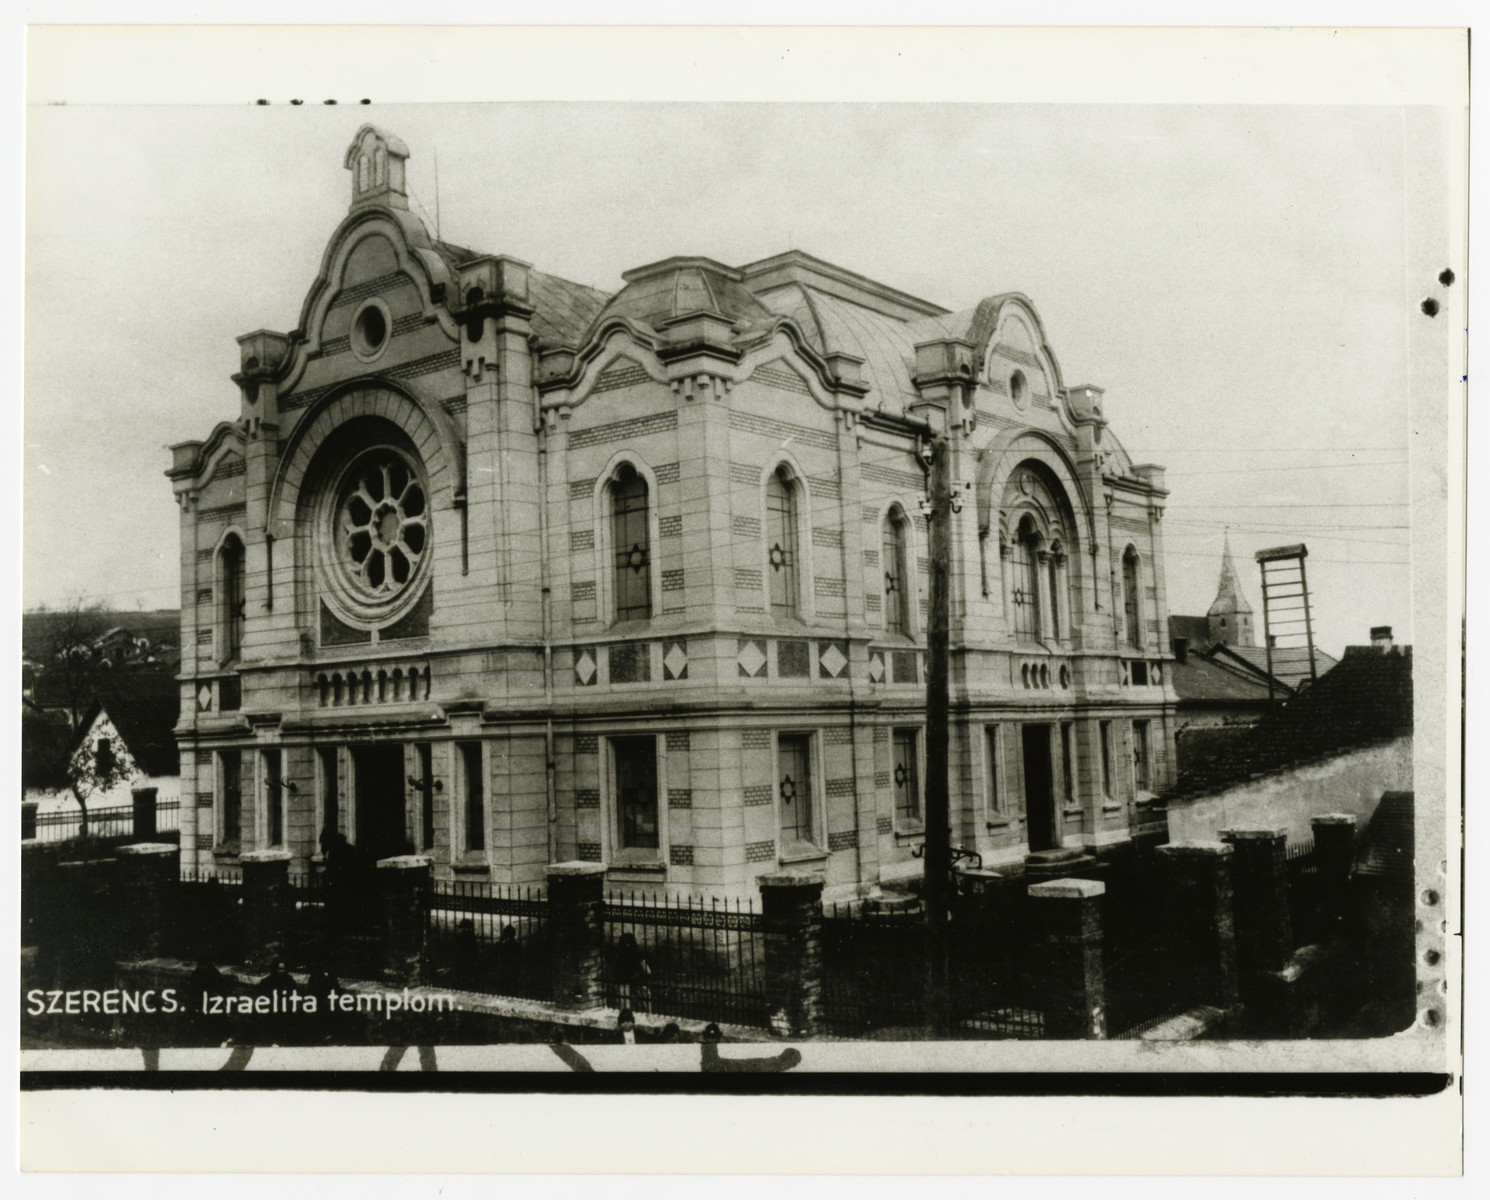 Prewar photograph of the Szerencs synagogue; it was destroyed sometime after the war.